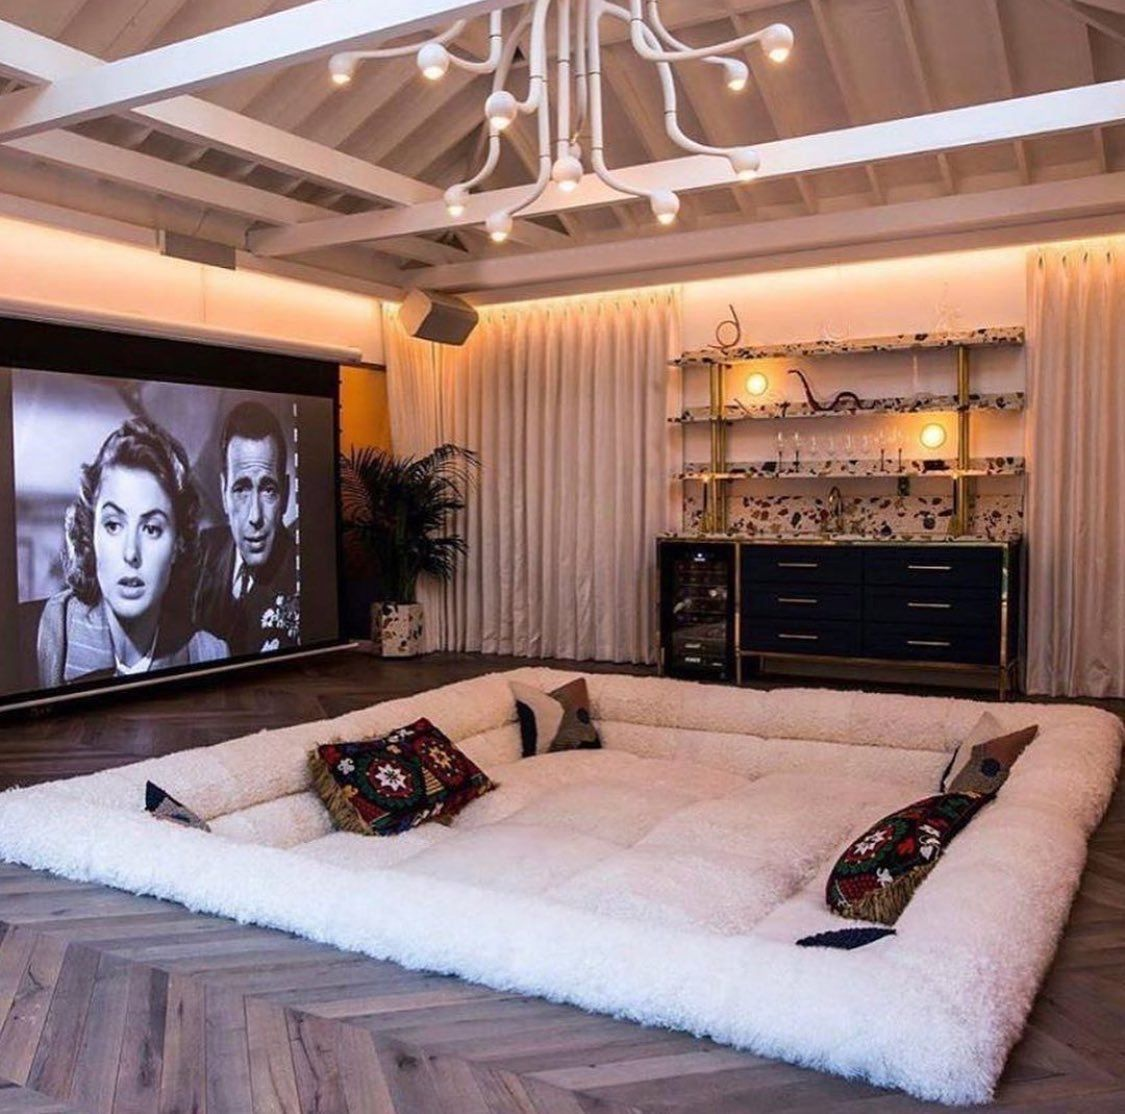 Pin By Leanne Tan Pattiselanno On Home In 2020 Sunken Living Room Home Home Room Design #sunken #living #room #couch